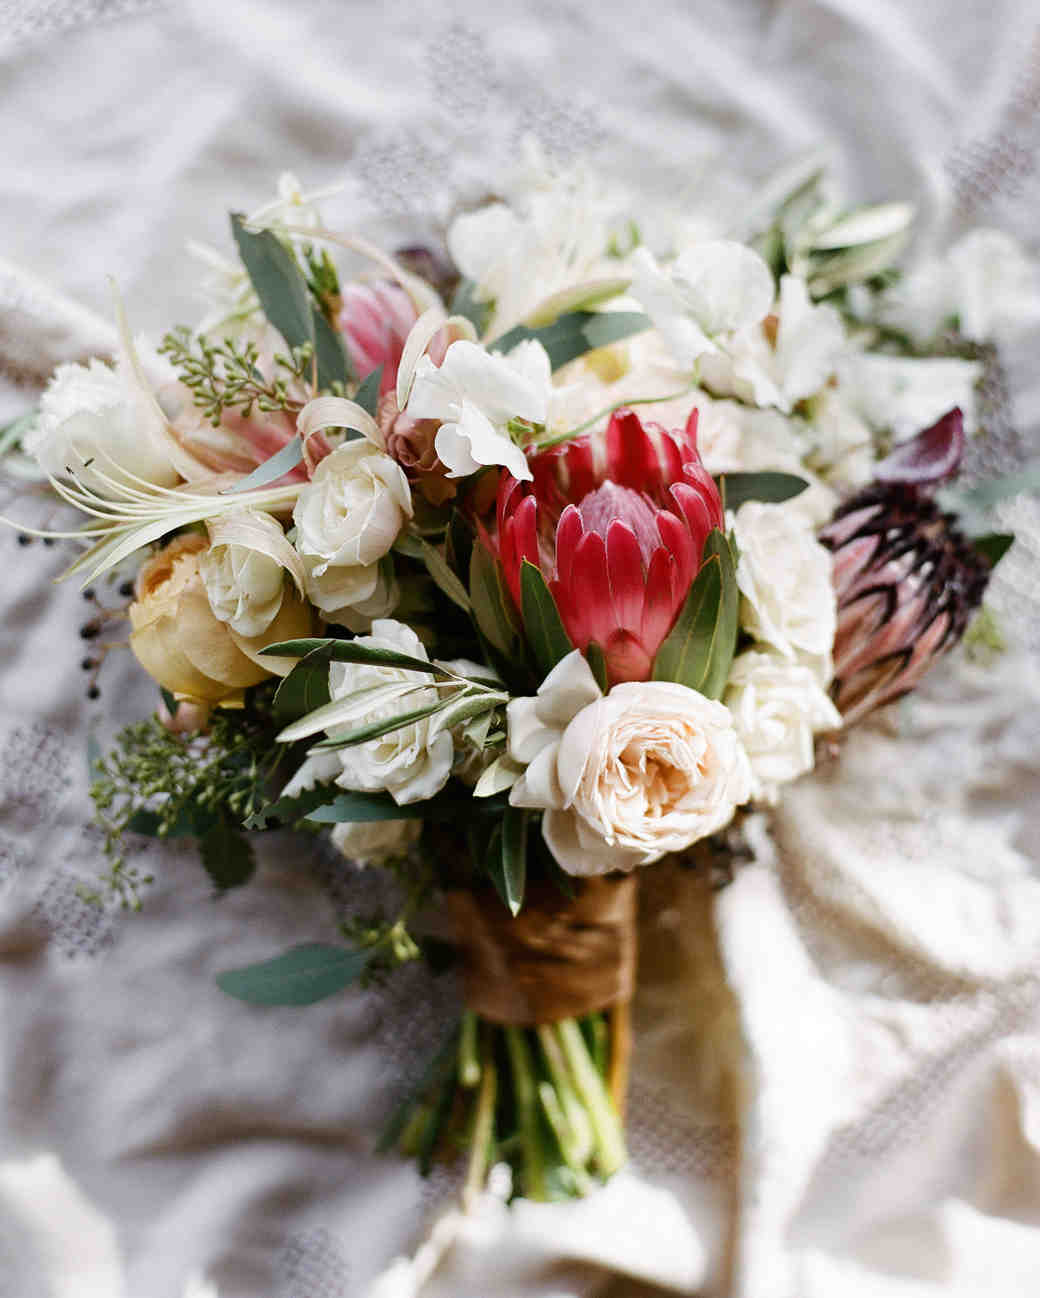 Flower Wedding Bouquet: 22 Modern Wedding Bouquets